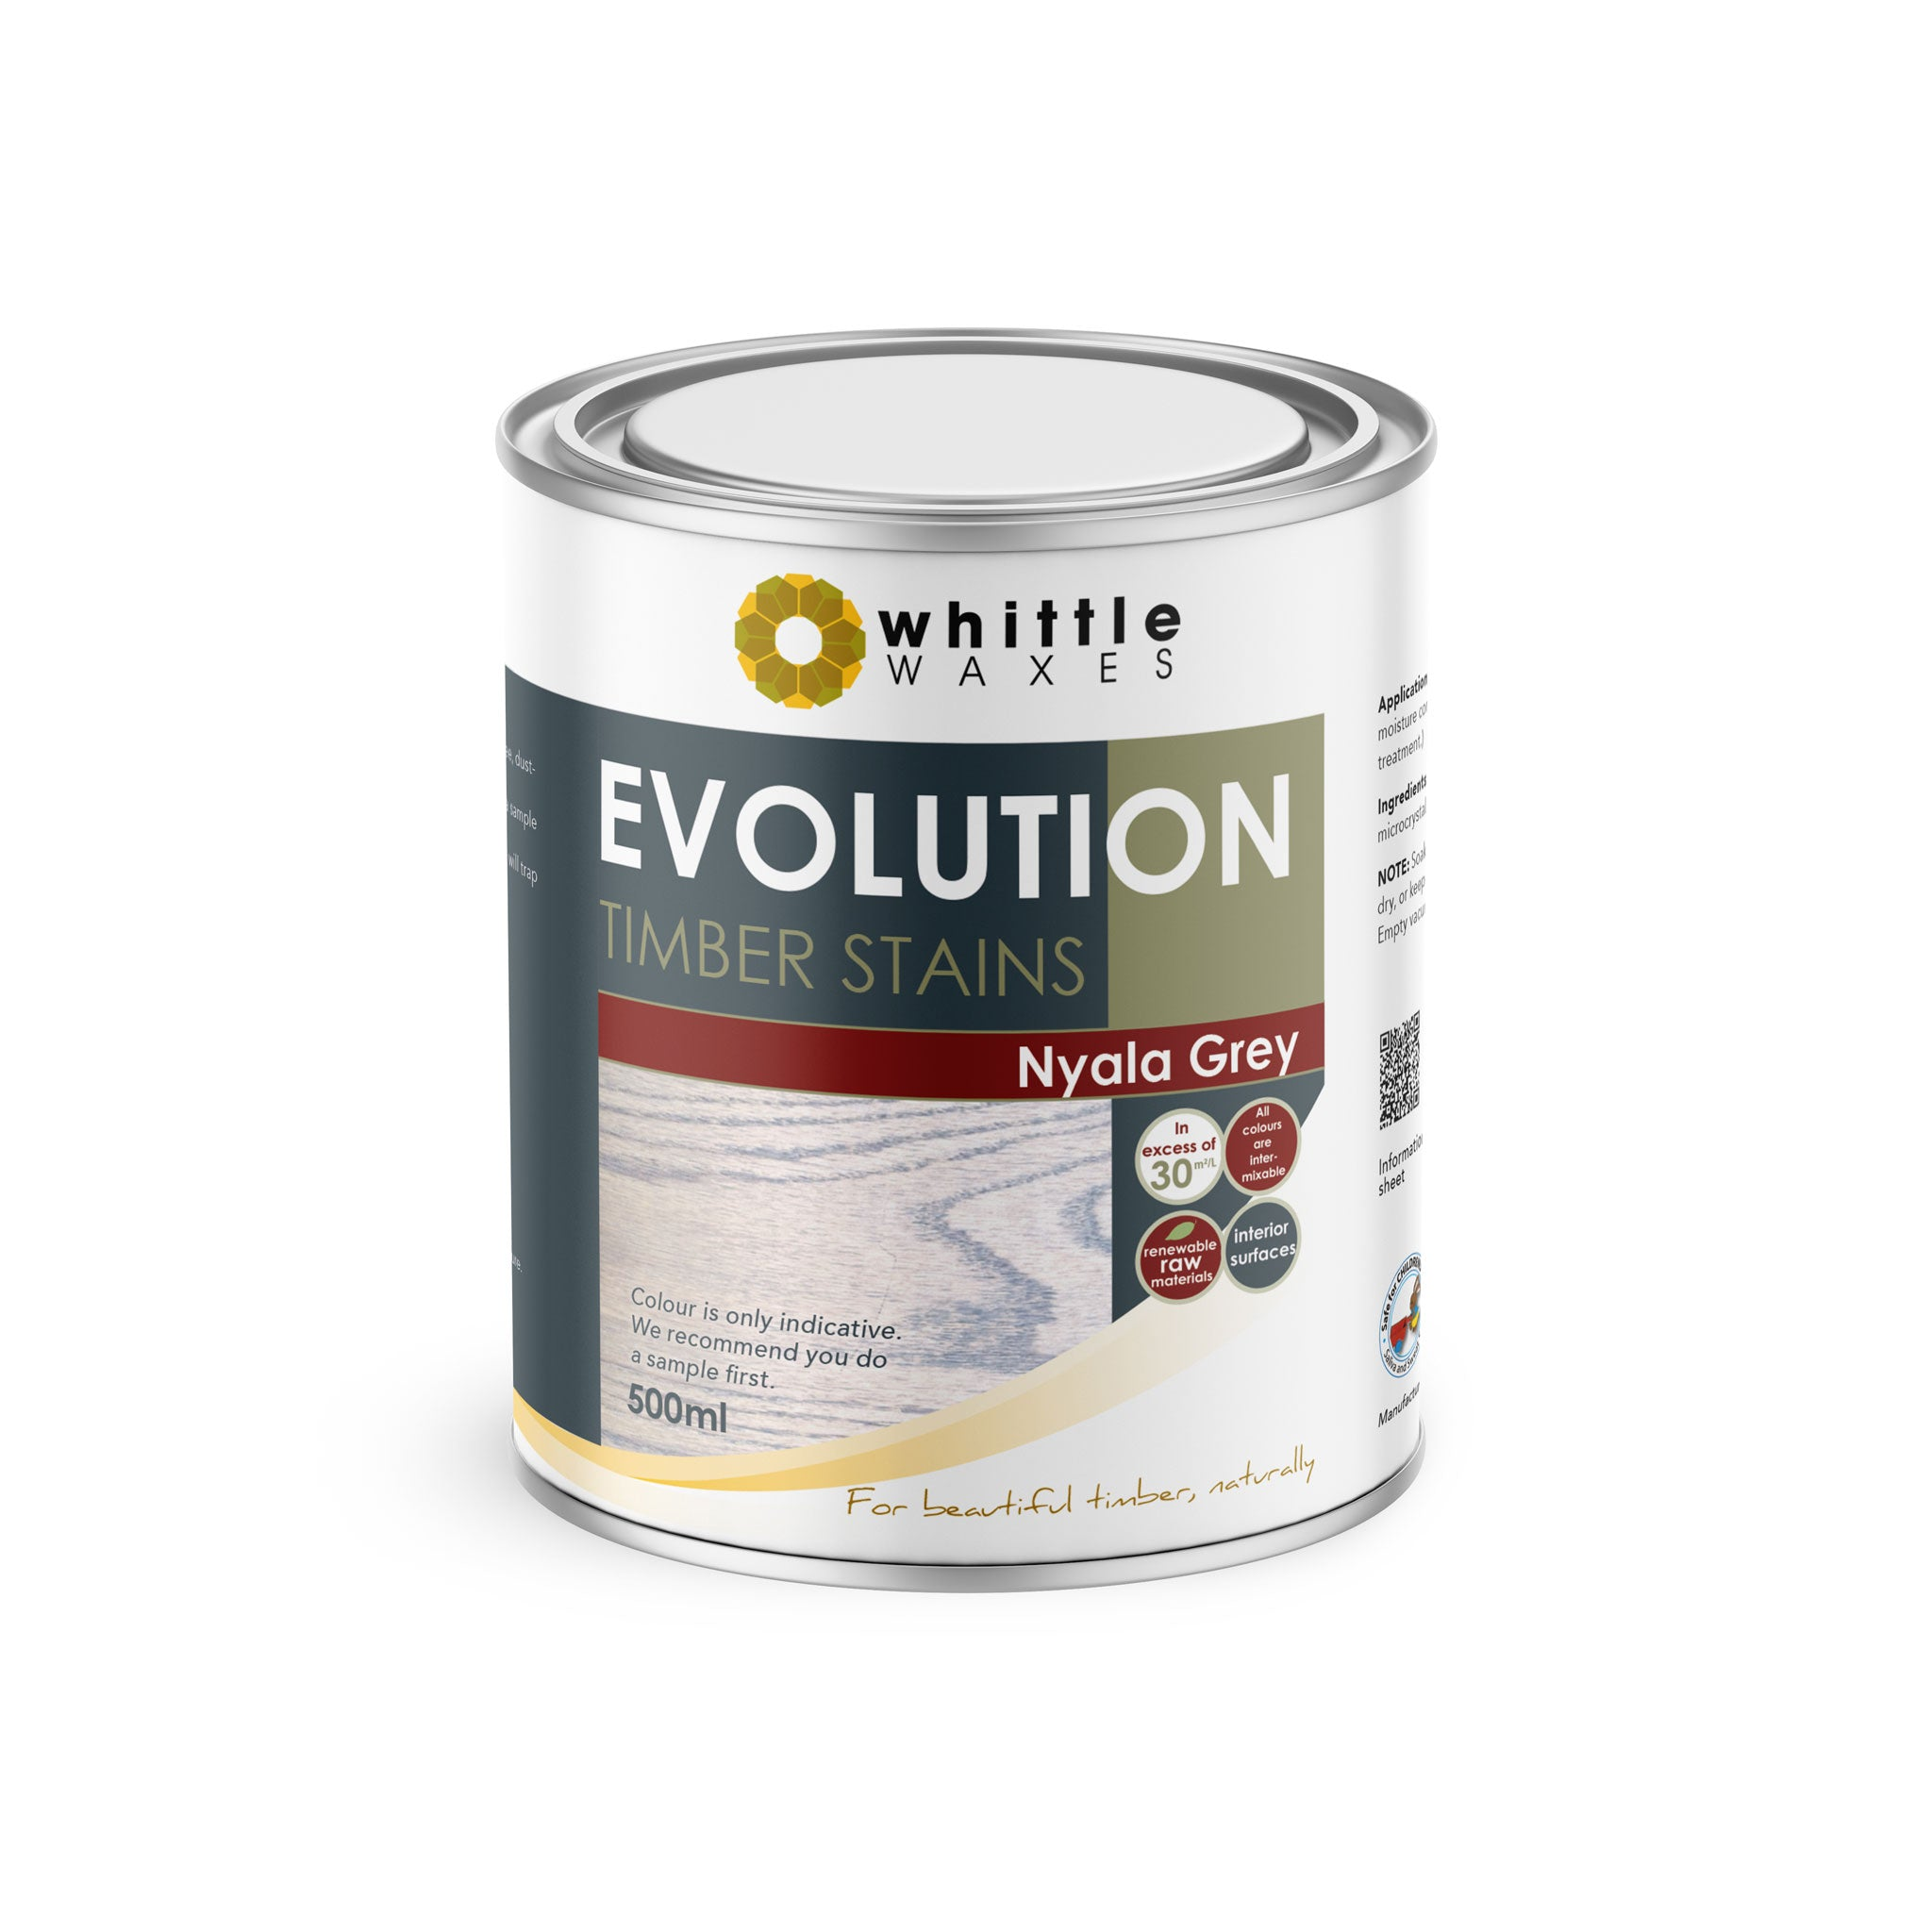 Whittle Waxes Evolution Colours (Nyala Grey) - quality timber stain - 500ml